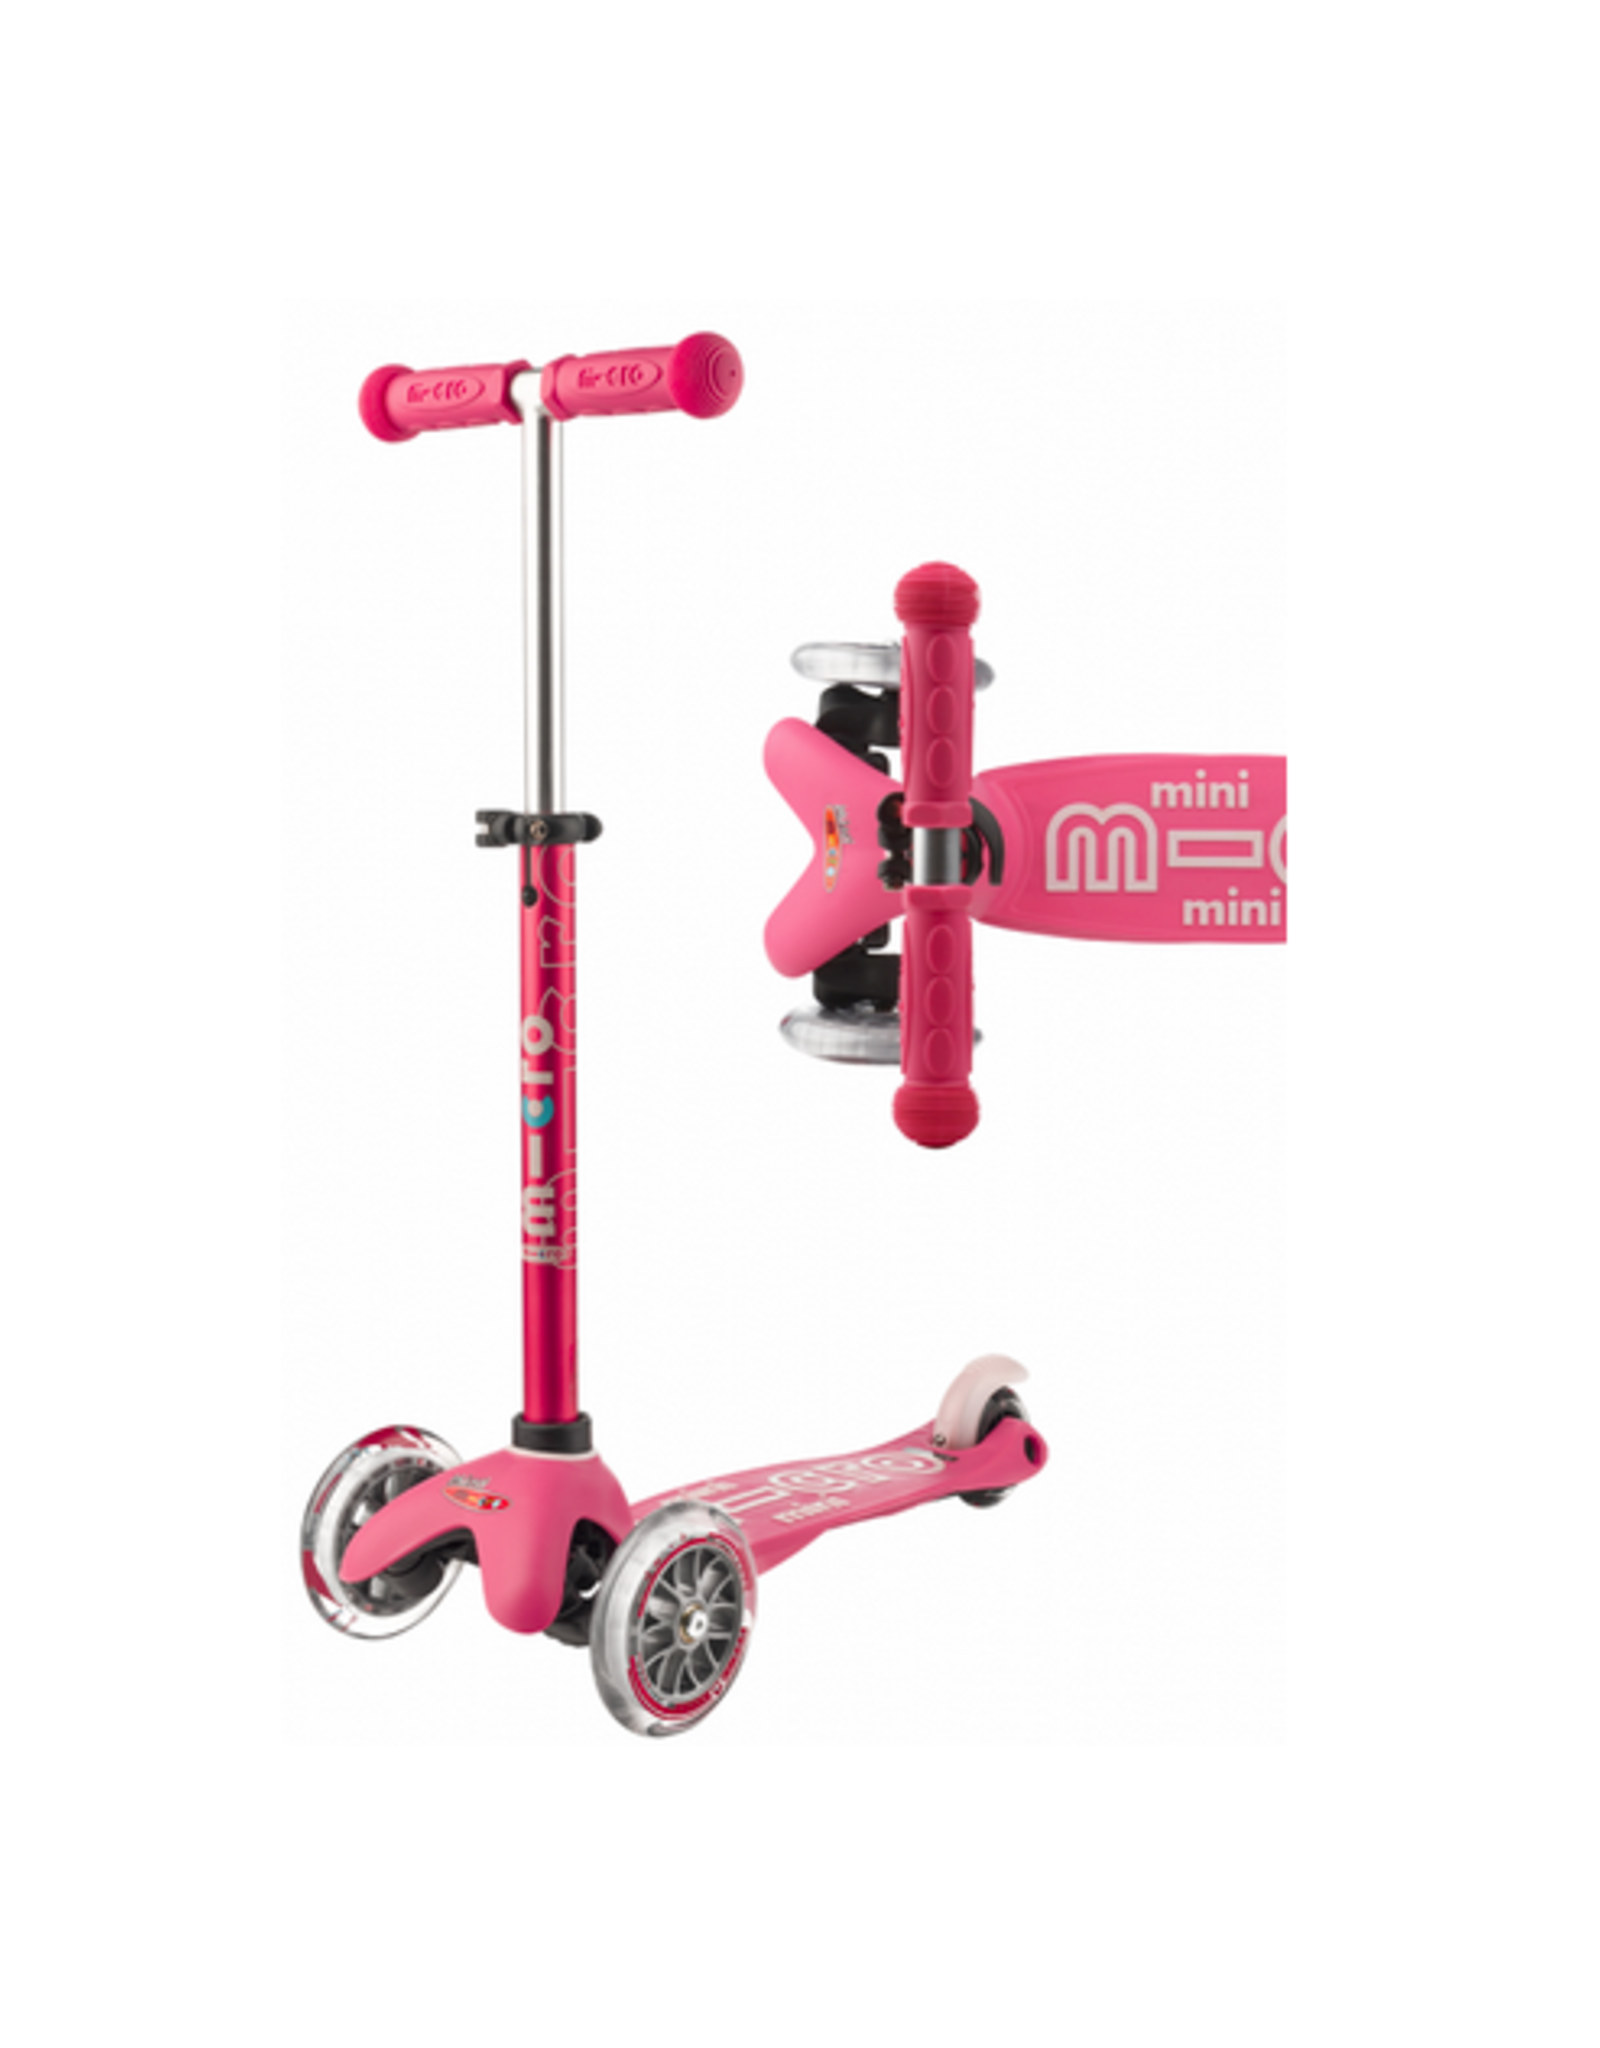 Mini Deluxe Micro Scooter Pink